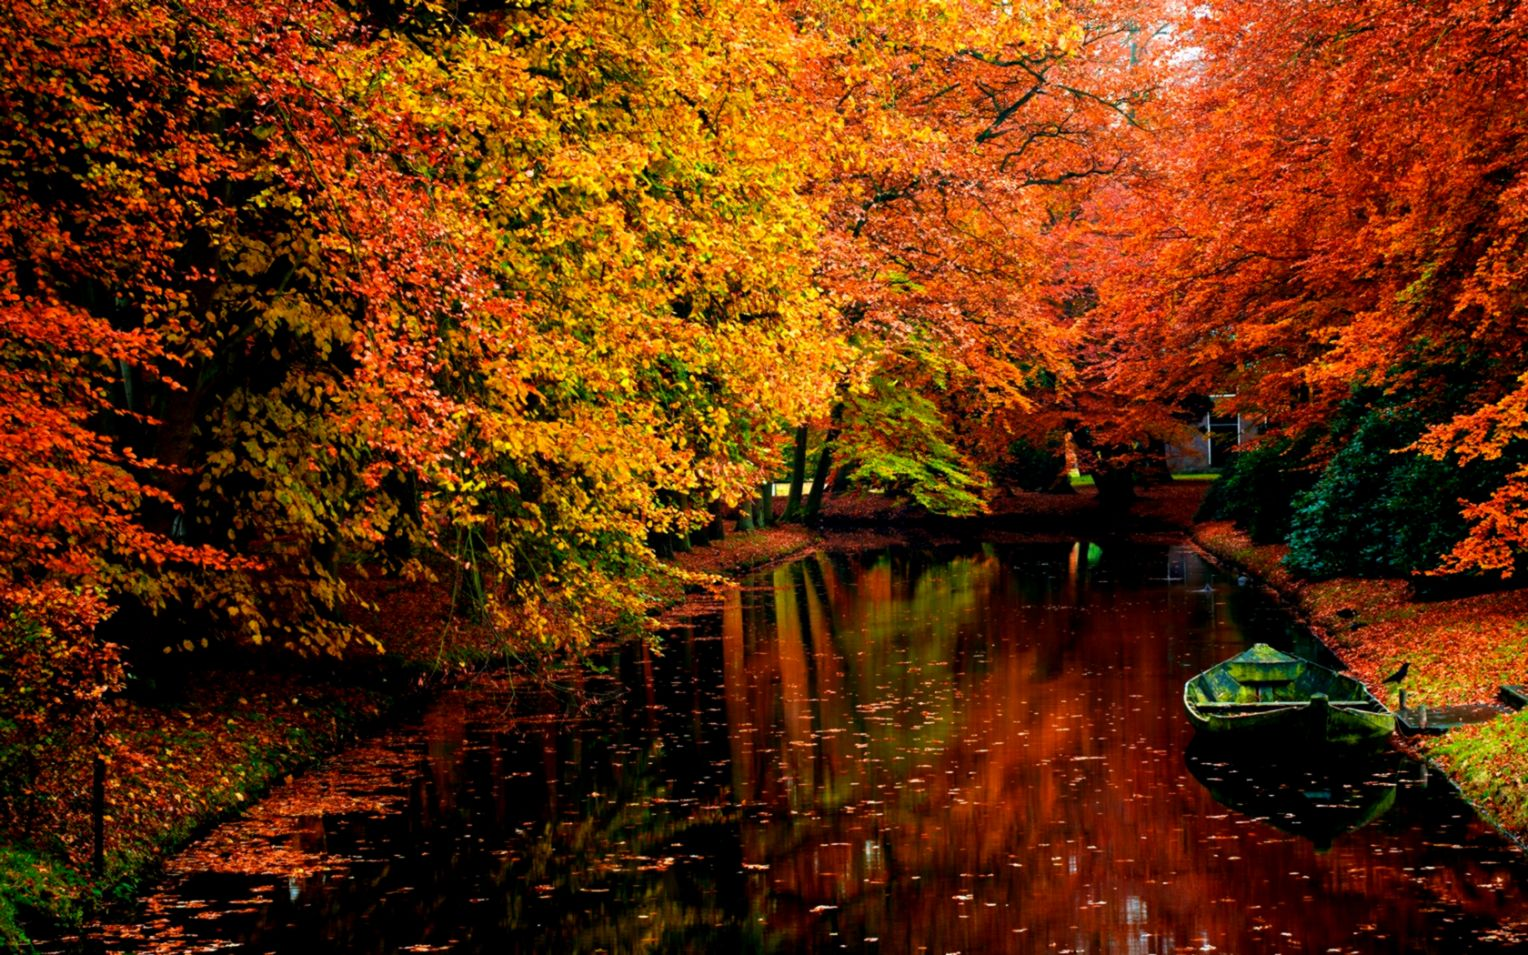 Trees Tree Autumn Nature Live Wallpaper Free Download For Windows